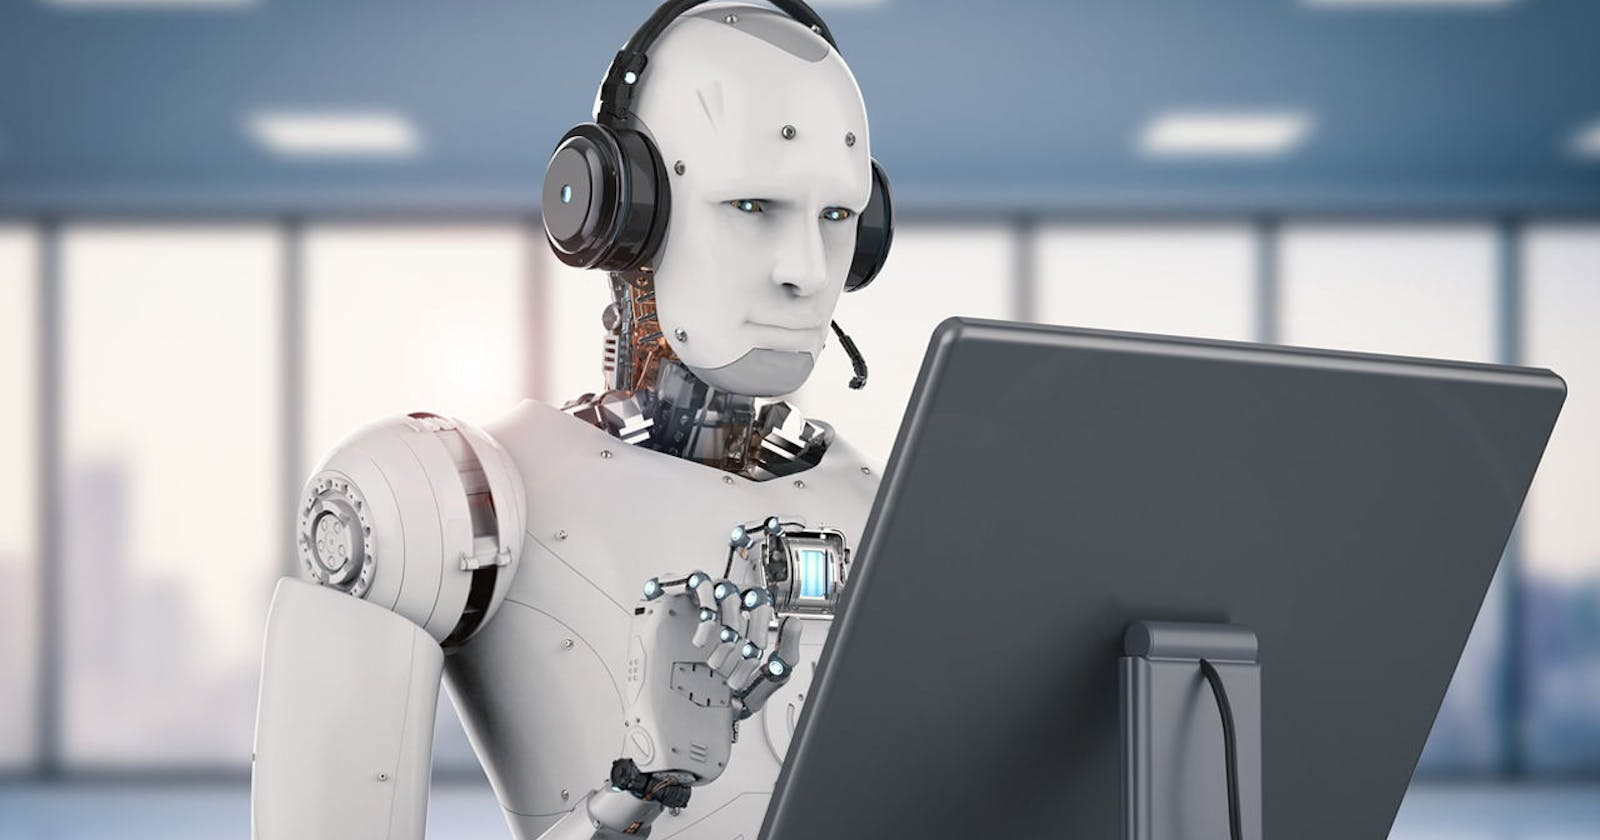 A Brief Introduction to RPA